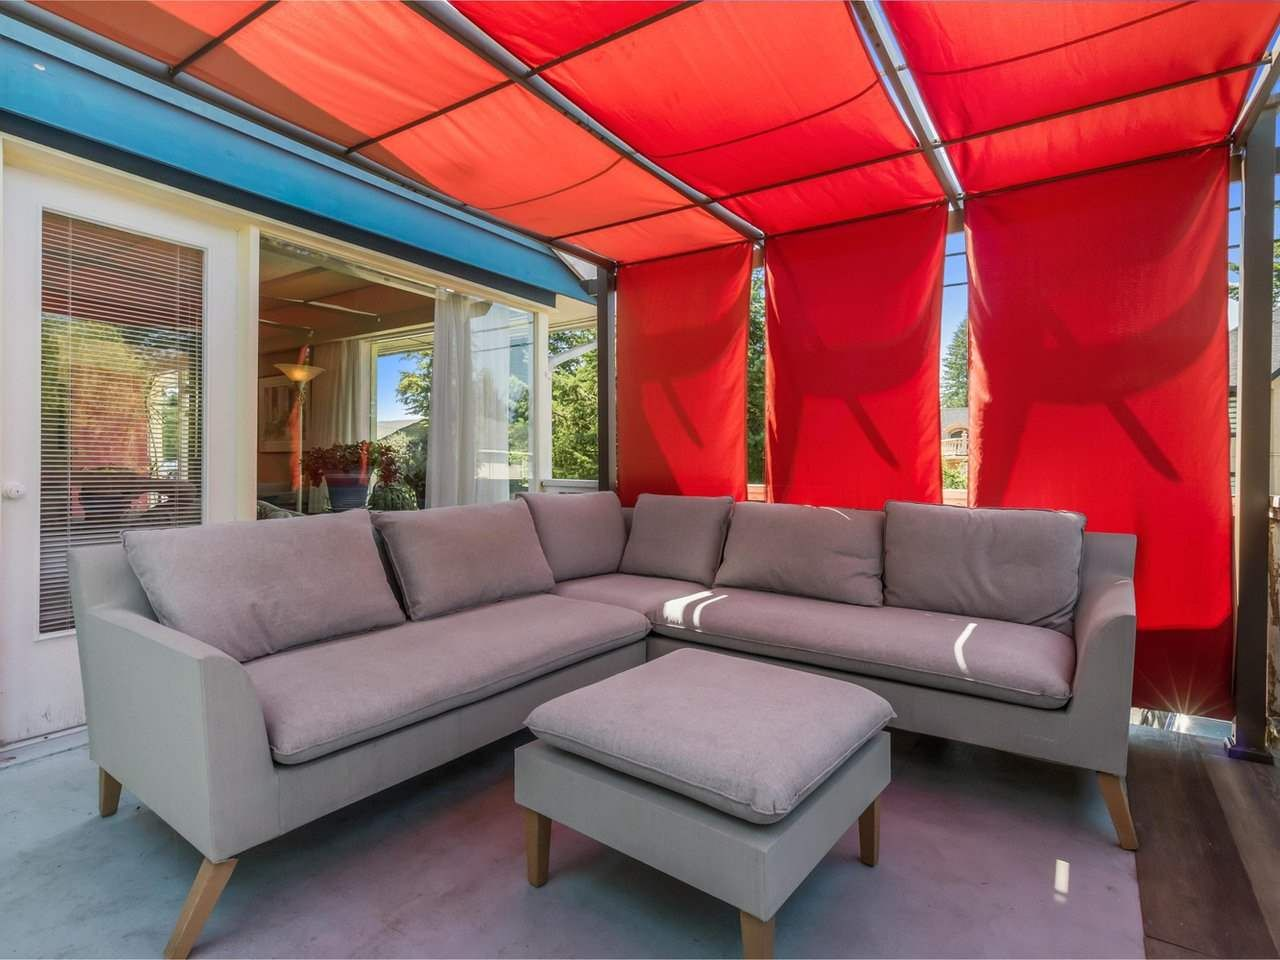 Photo 10: Photos: 943 GATENSBURY Street in Coquitlam: Harbour Chines House for sale : MLS®# R2499202